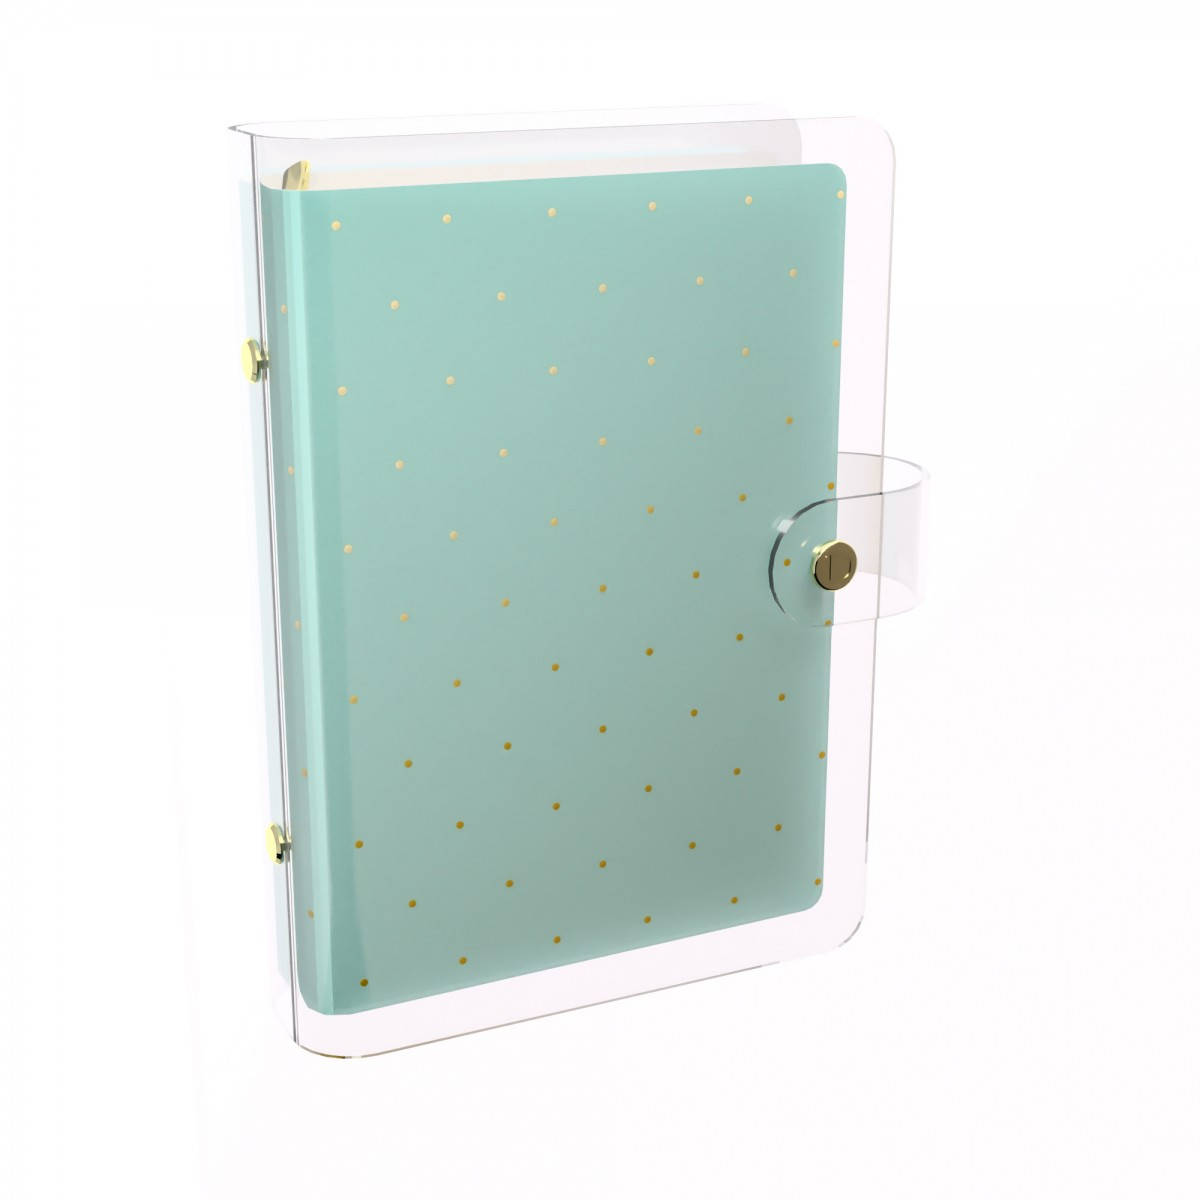 DISCAGENDA CLARITY CLEAR PVC PLANNER COVER - MINT WITH GOLD POLKA DOTS, RINGBOUND, PERSONAL SIZE